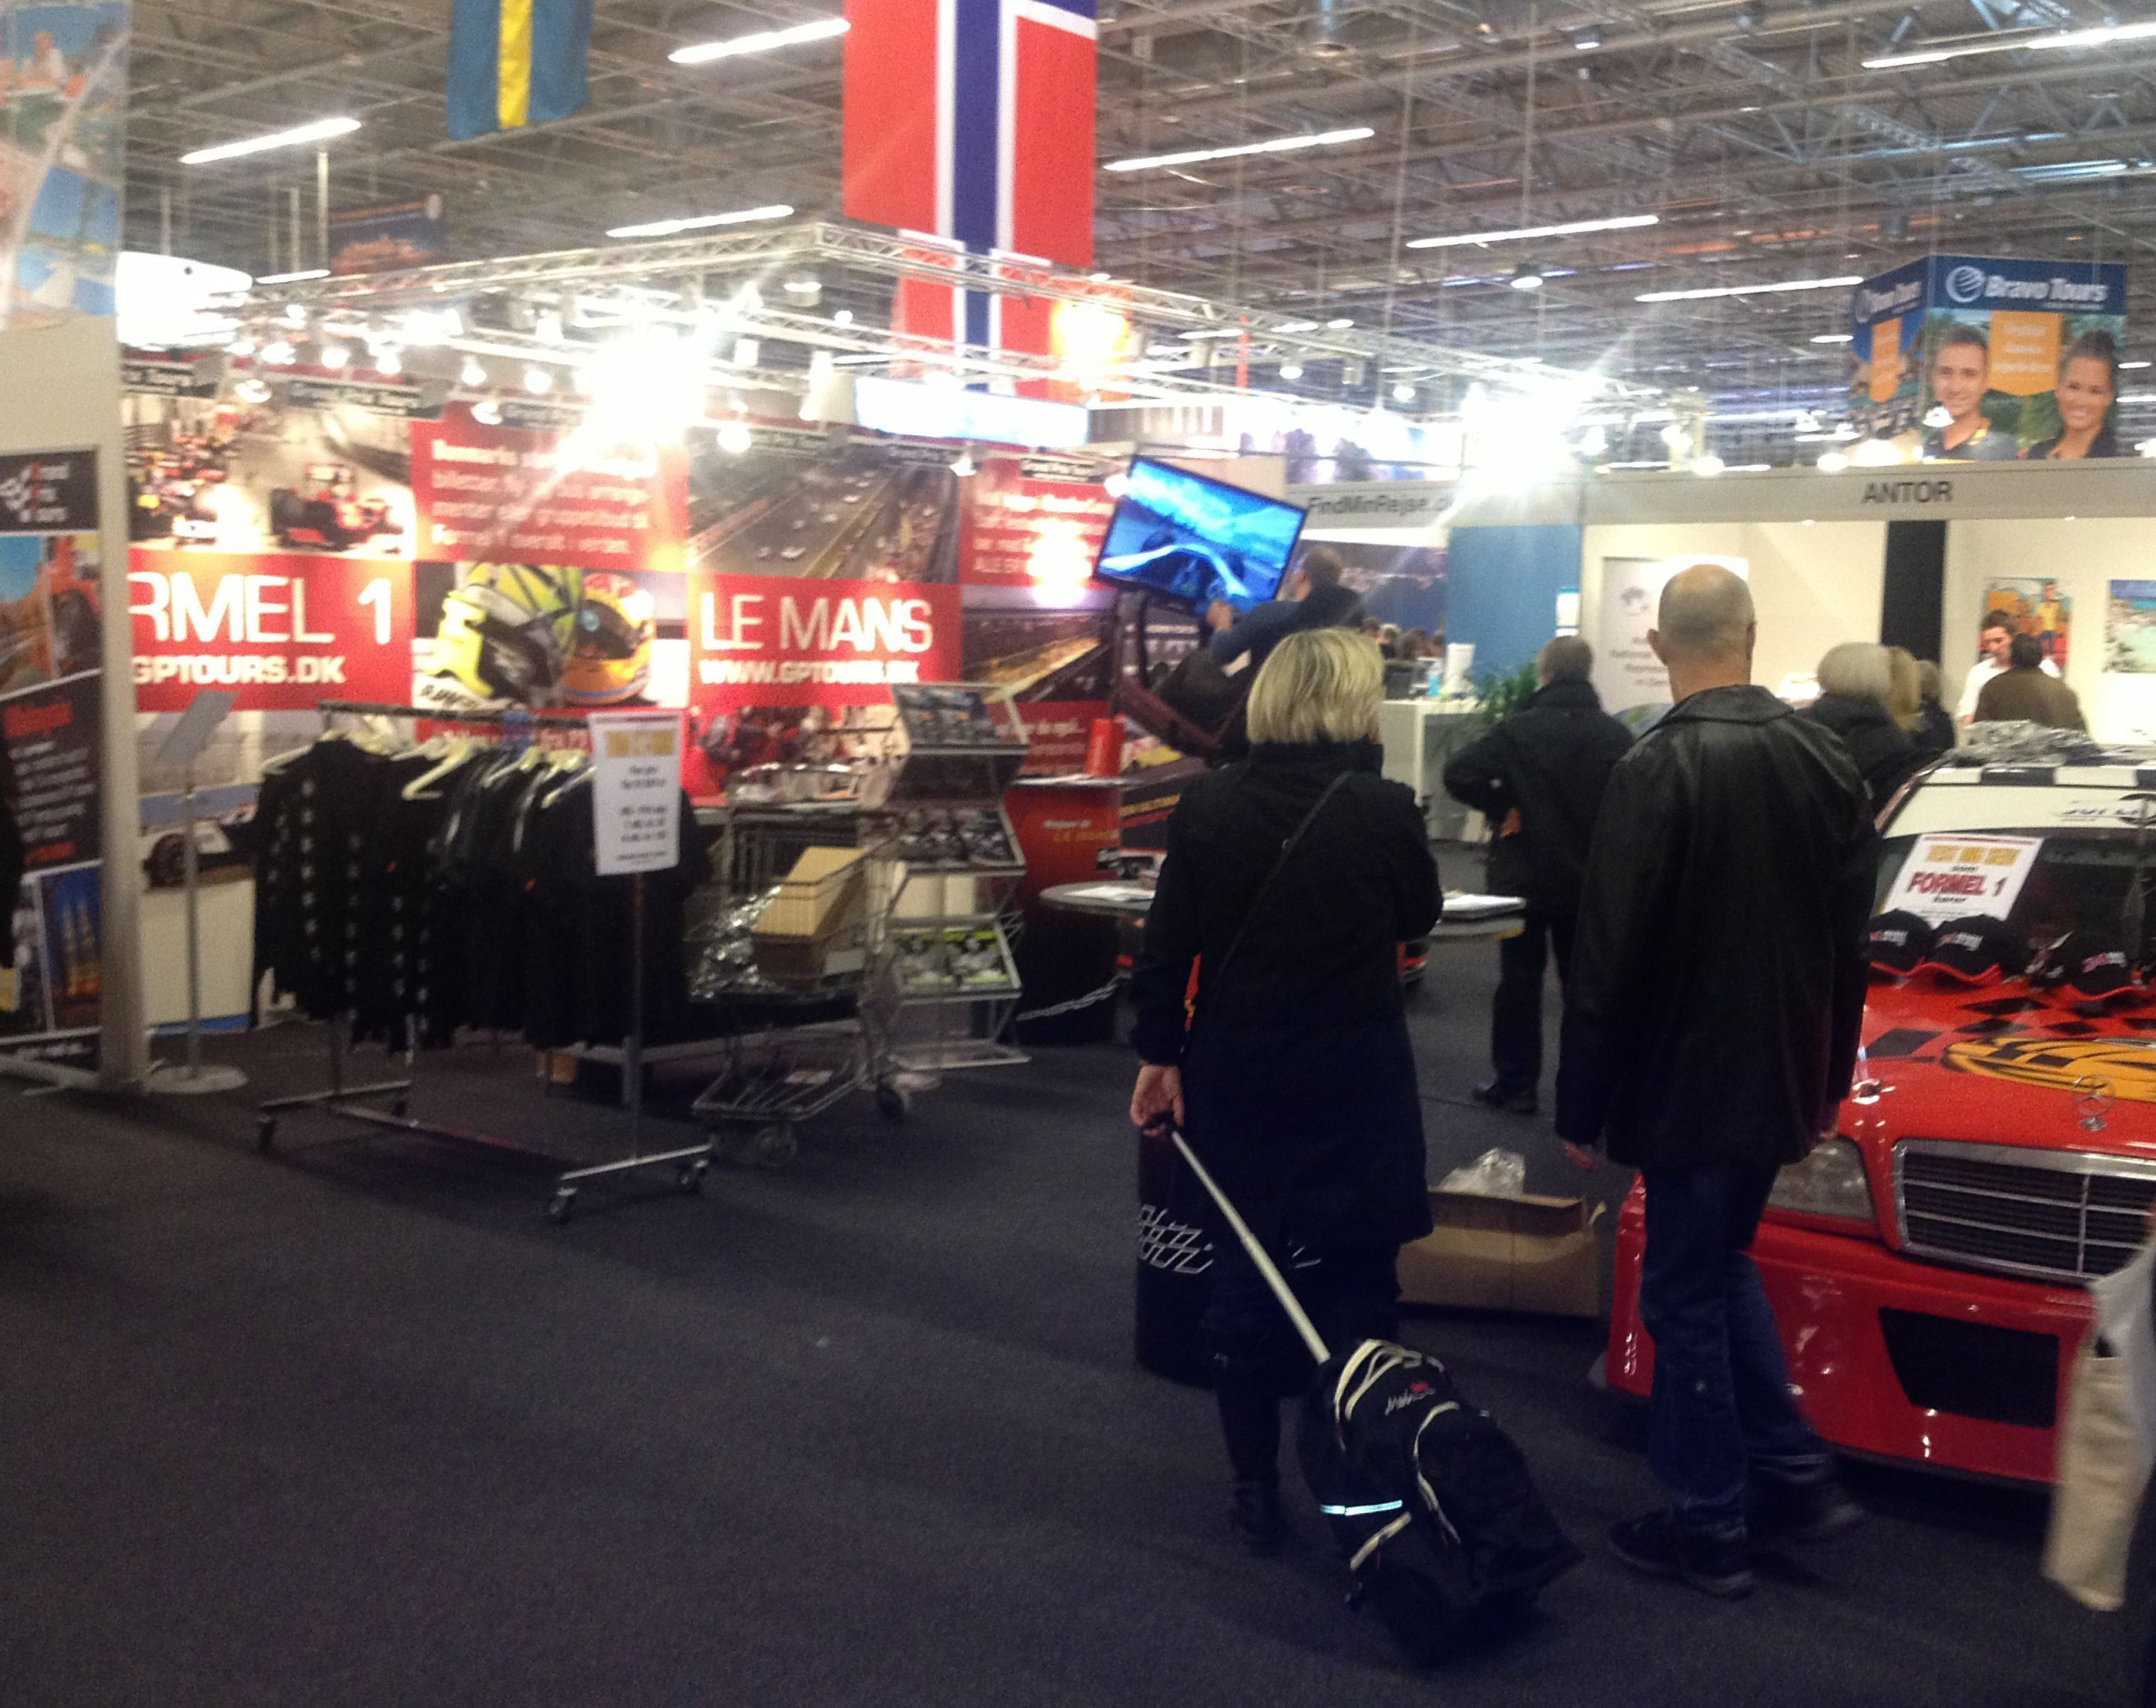 Formel 1 stand